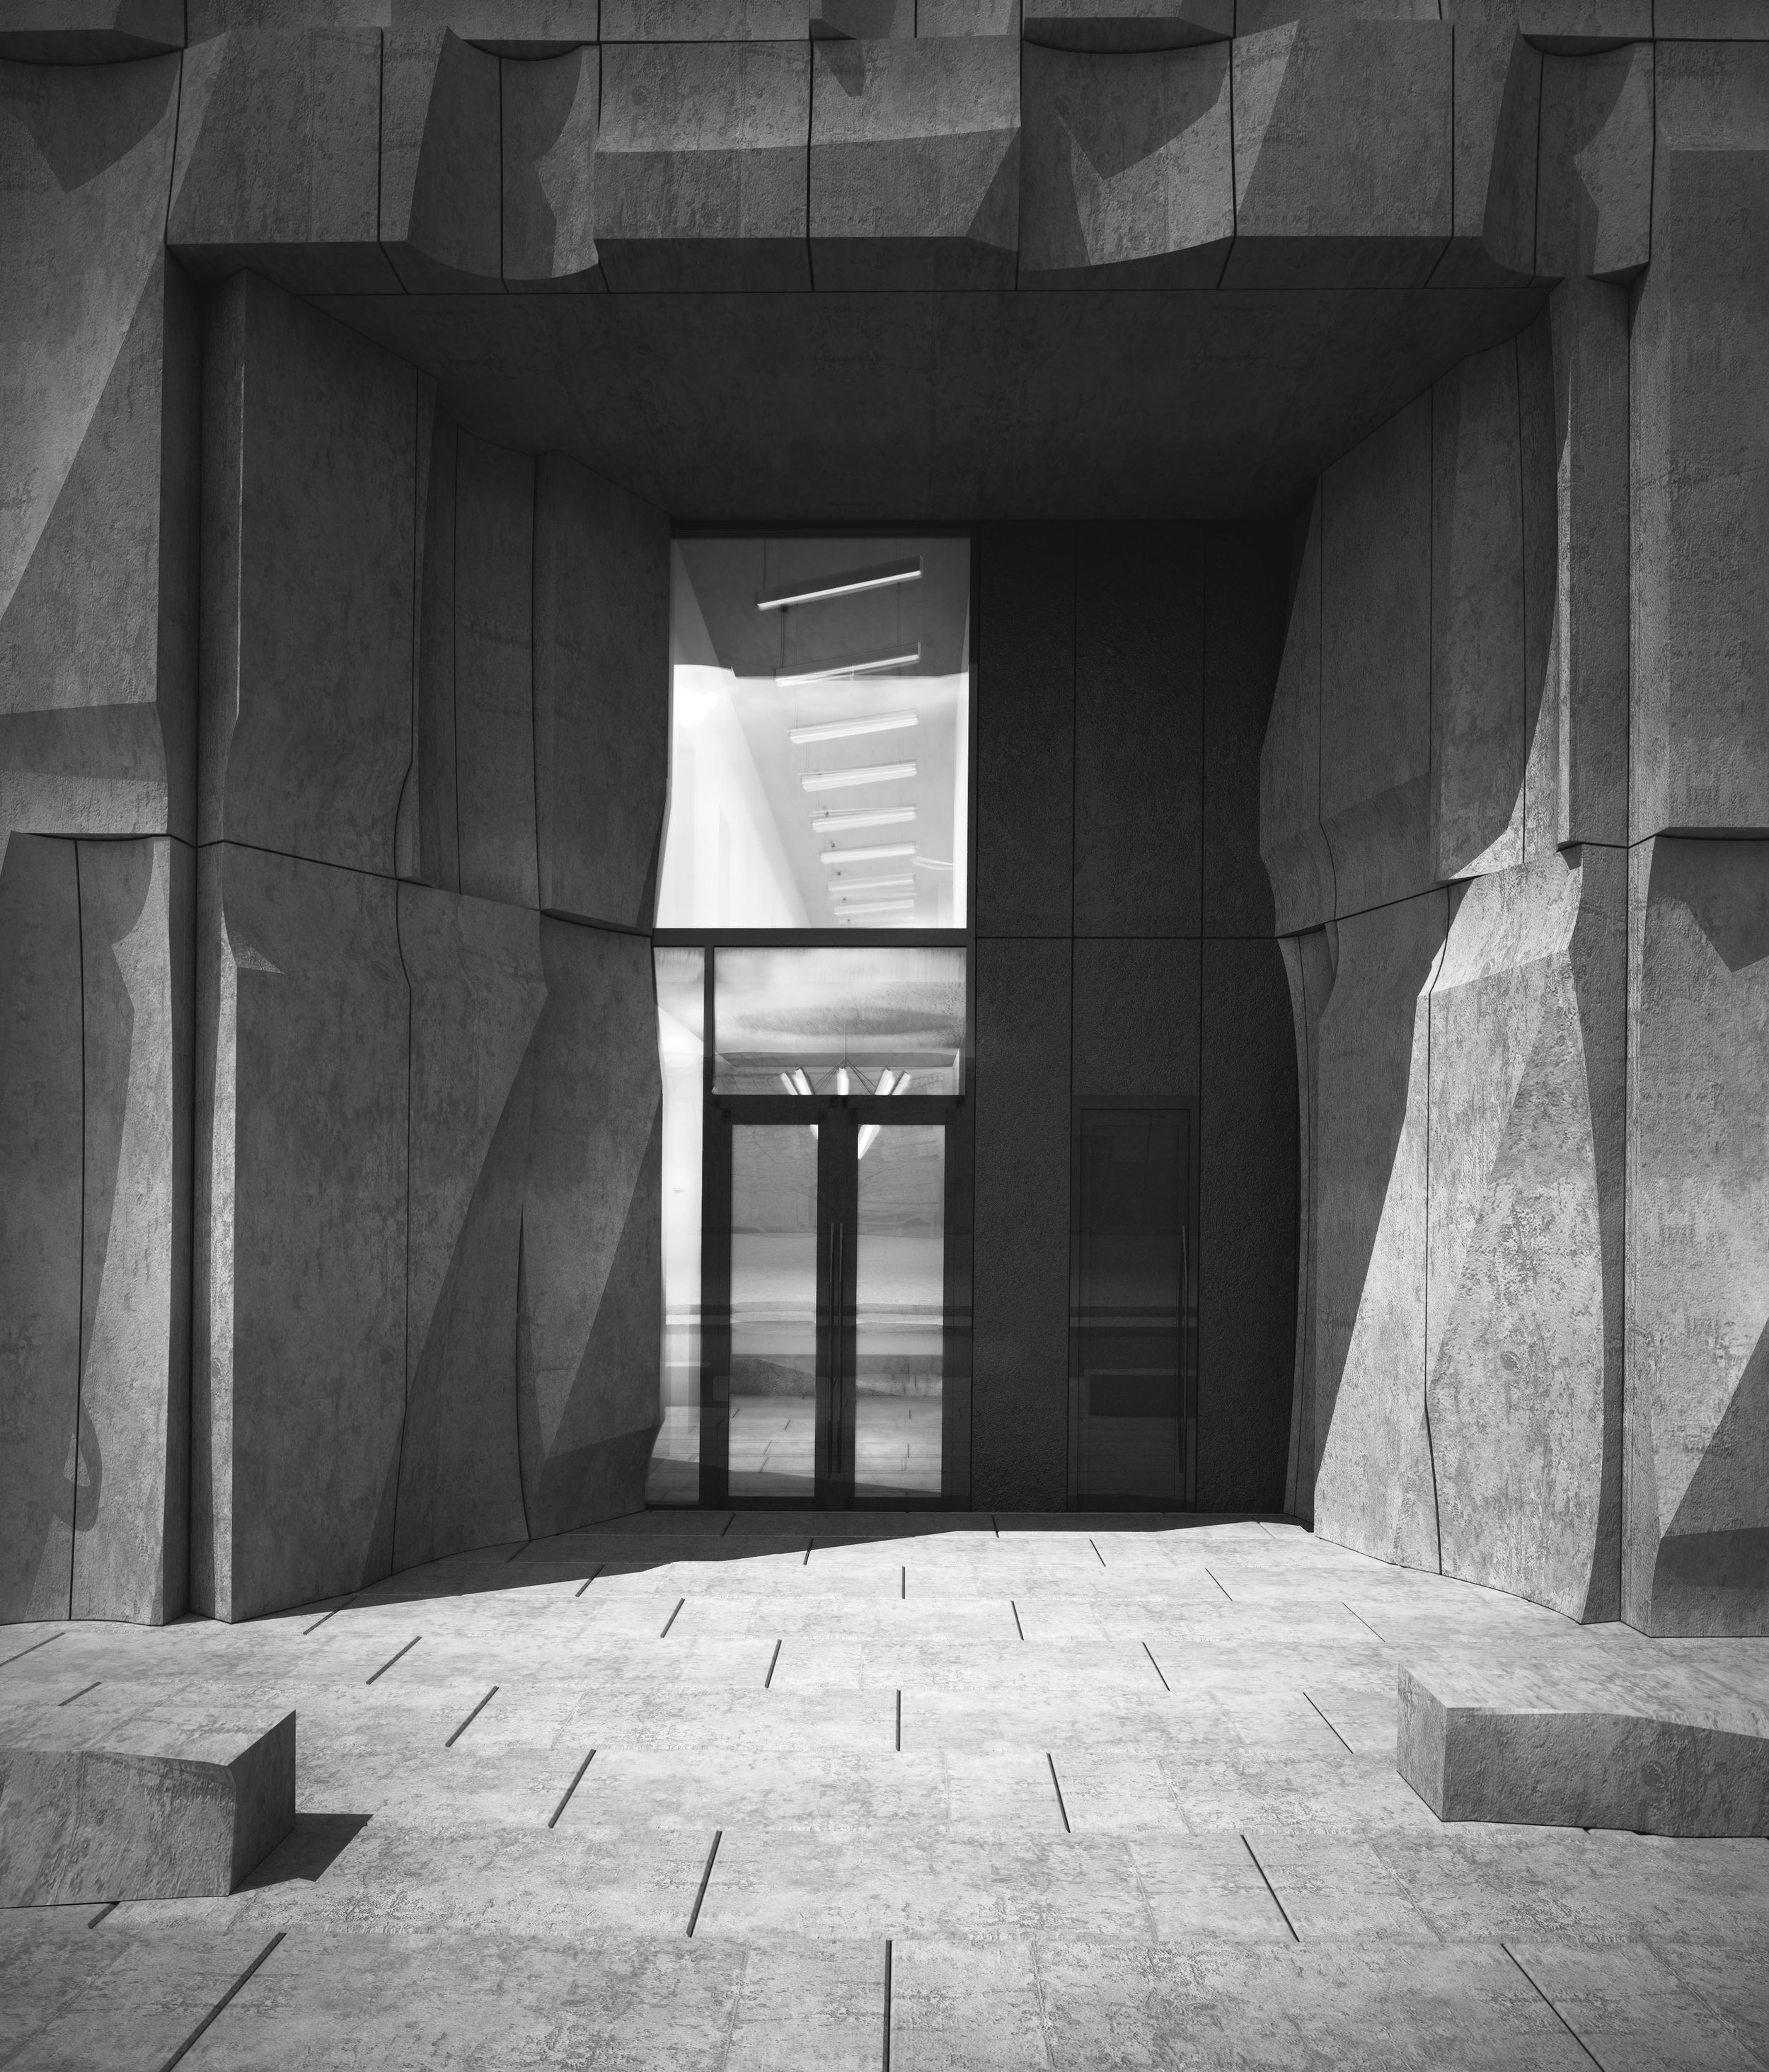 View of sunken entrance space with carved panels folded at corners